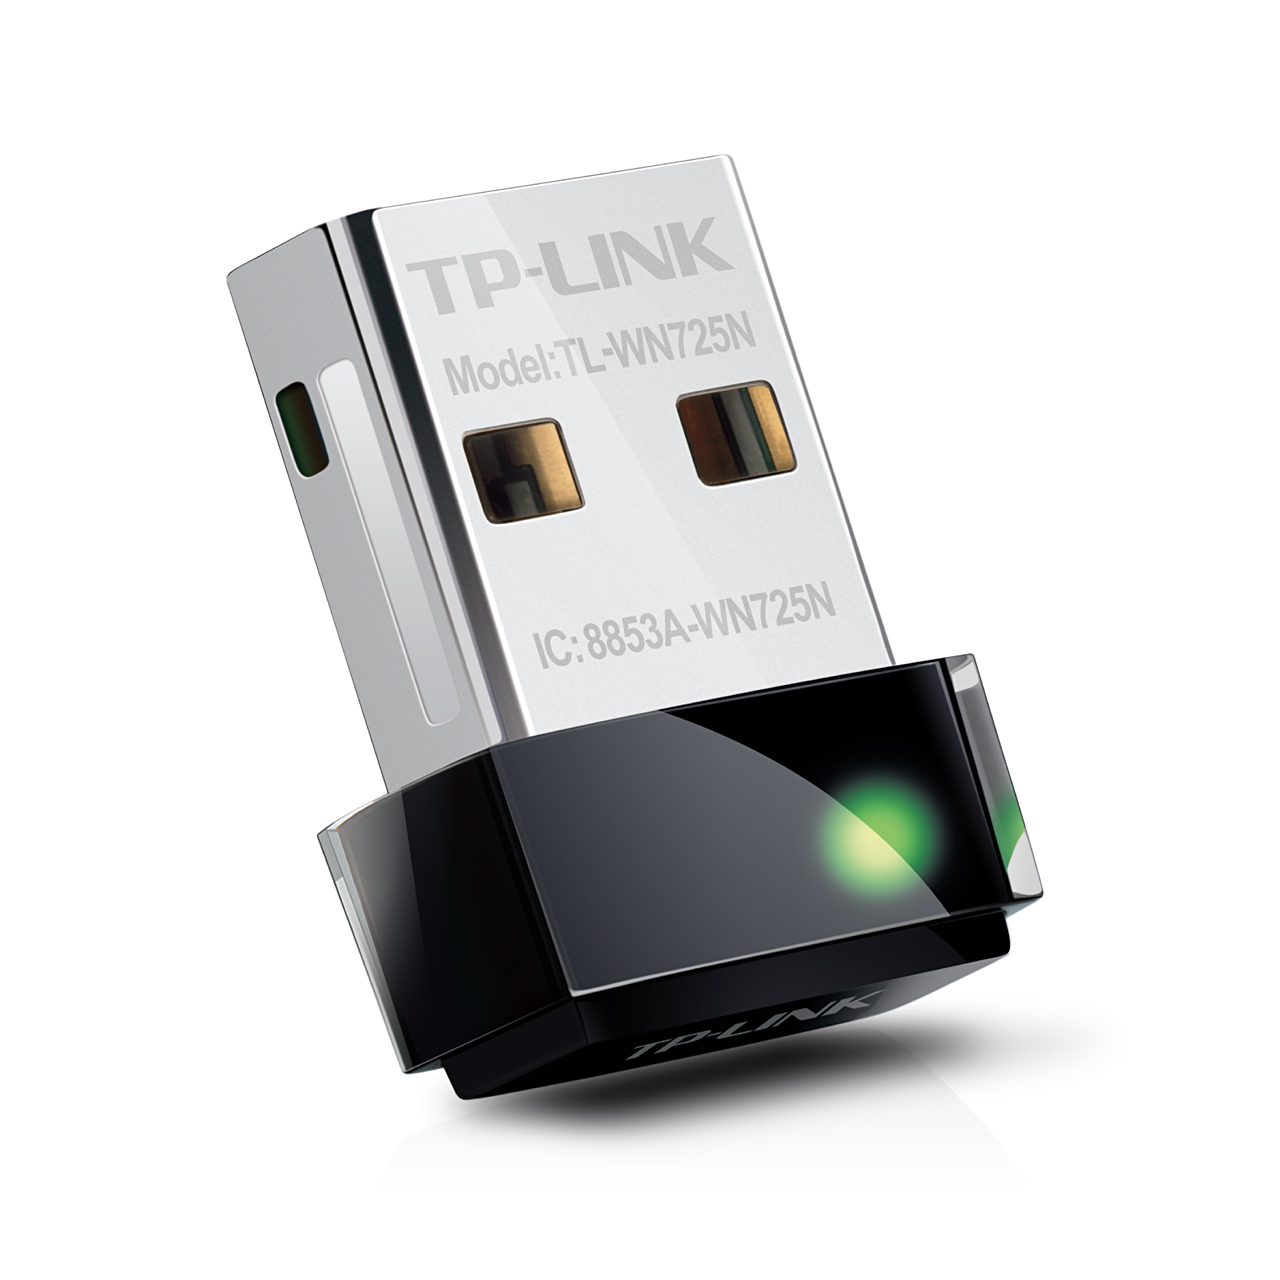 Tp-link tl-wn725n driver download for windows, mac and linux.